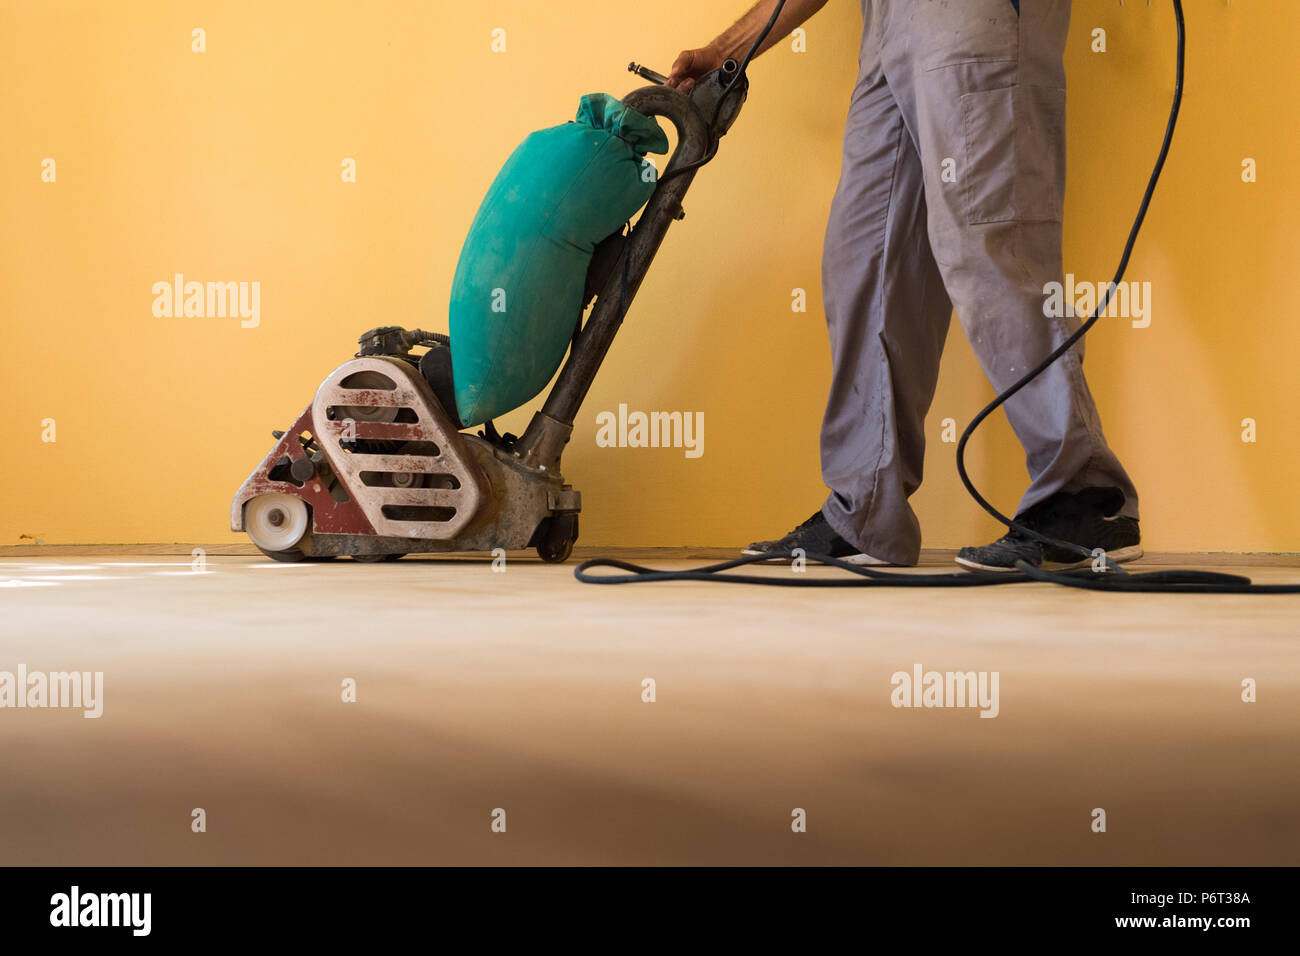 Home renovation and parquet sanding Stock Photo